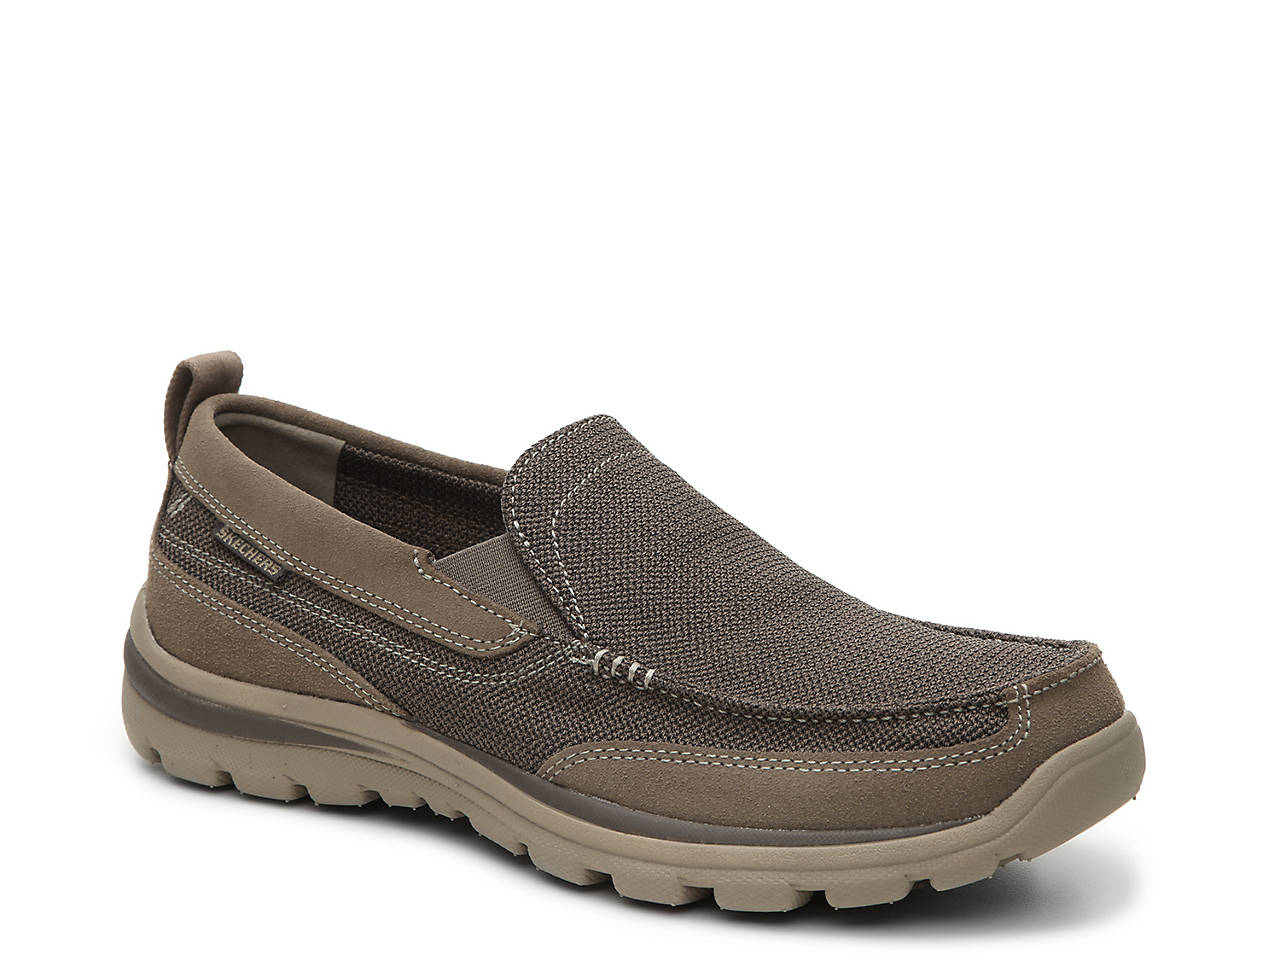 3a2e045e1caa Skechers Relaxed Fit Milford Slip-On Men s Shoes